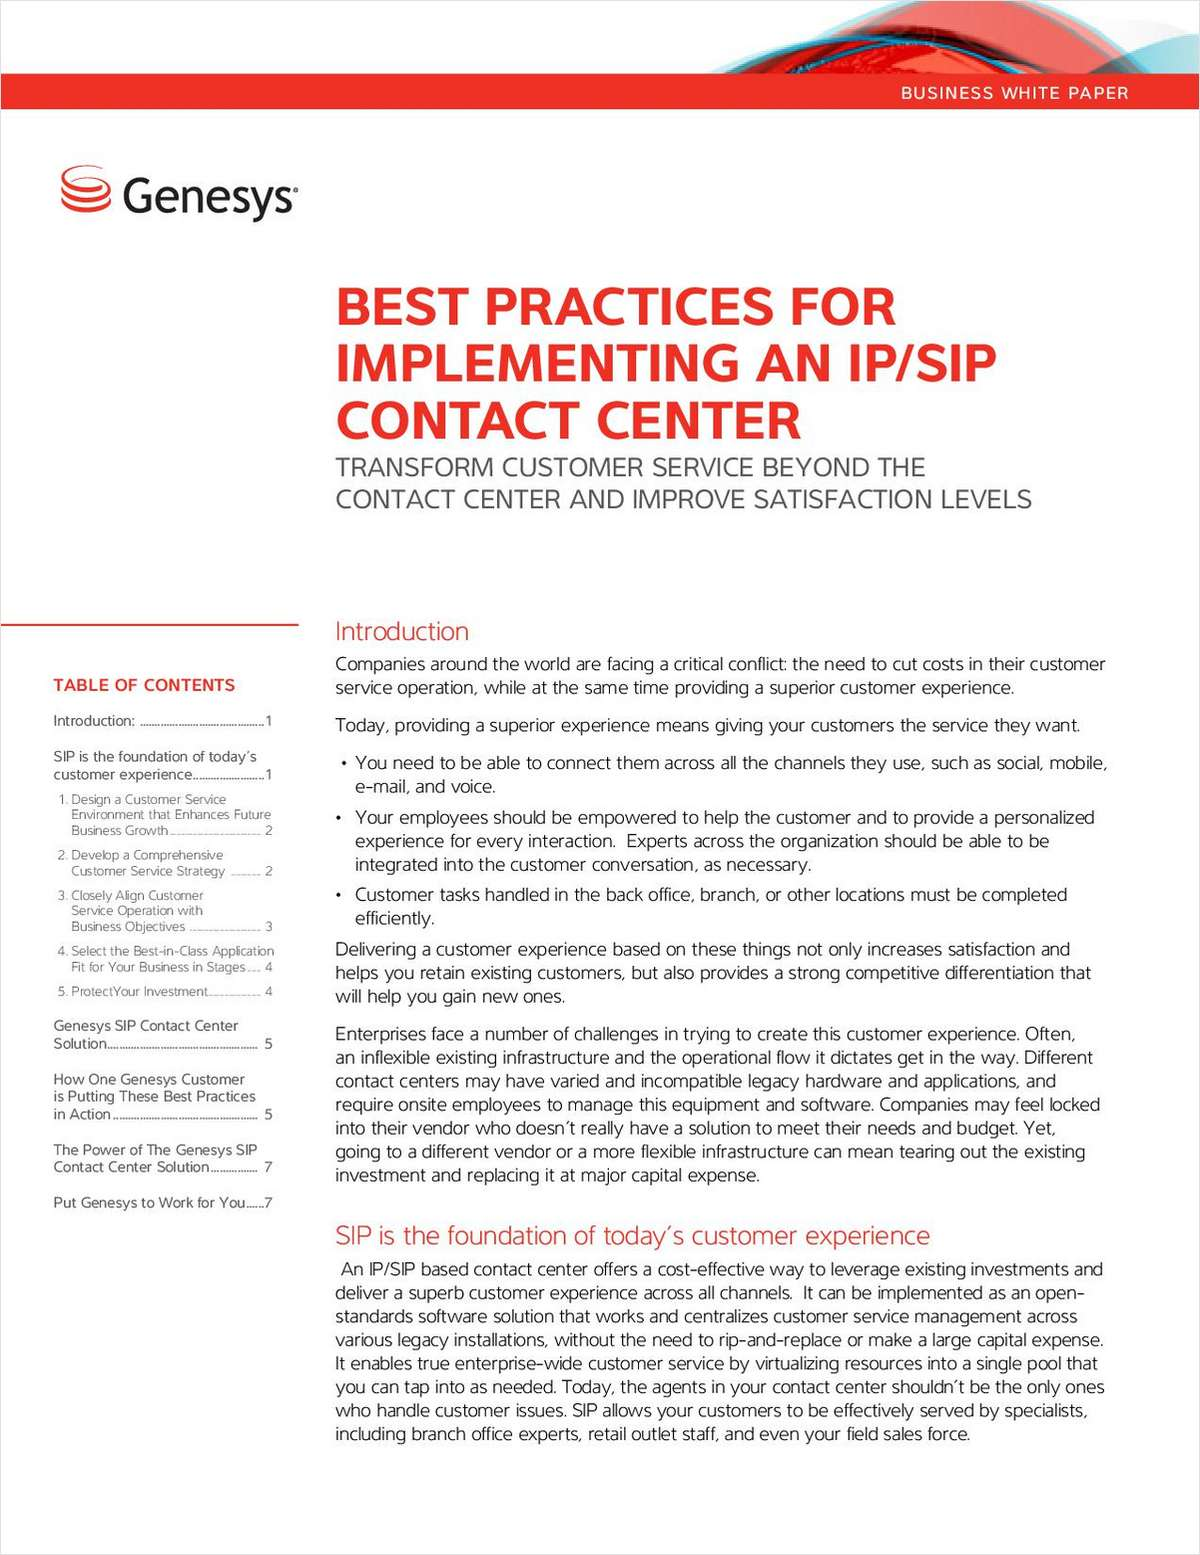 Best Practices for Implementing an IP/SIP Contact Center